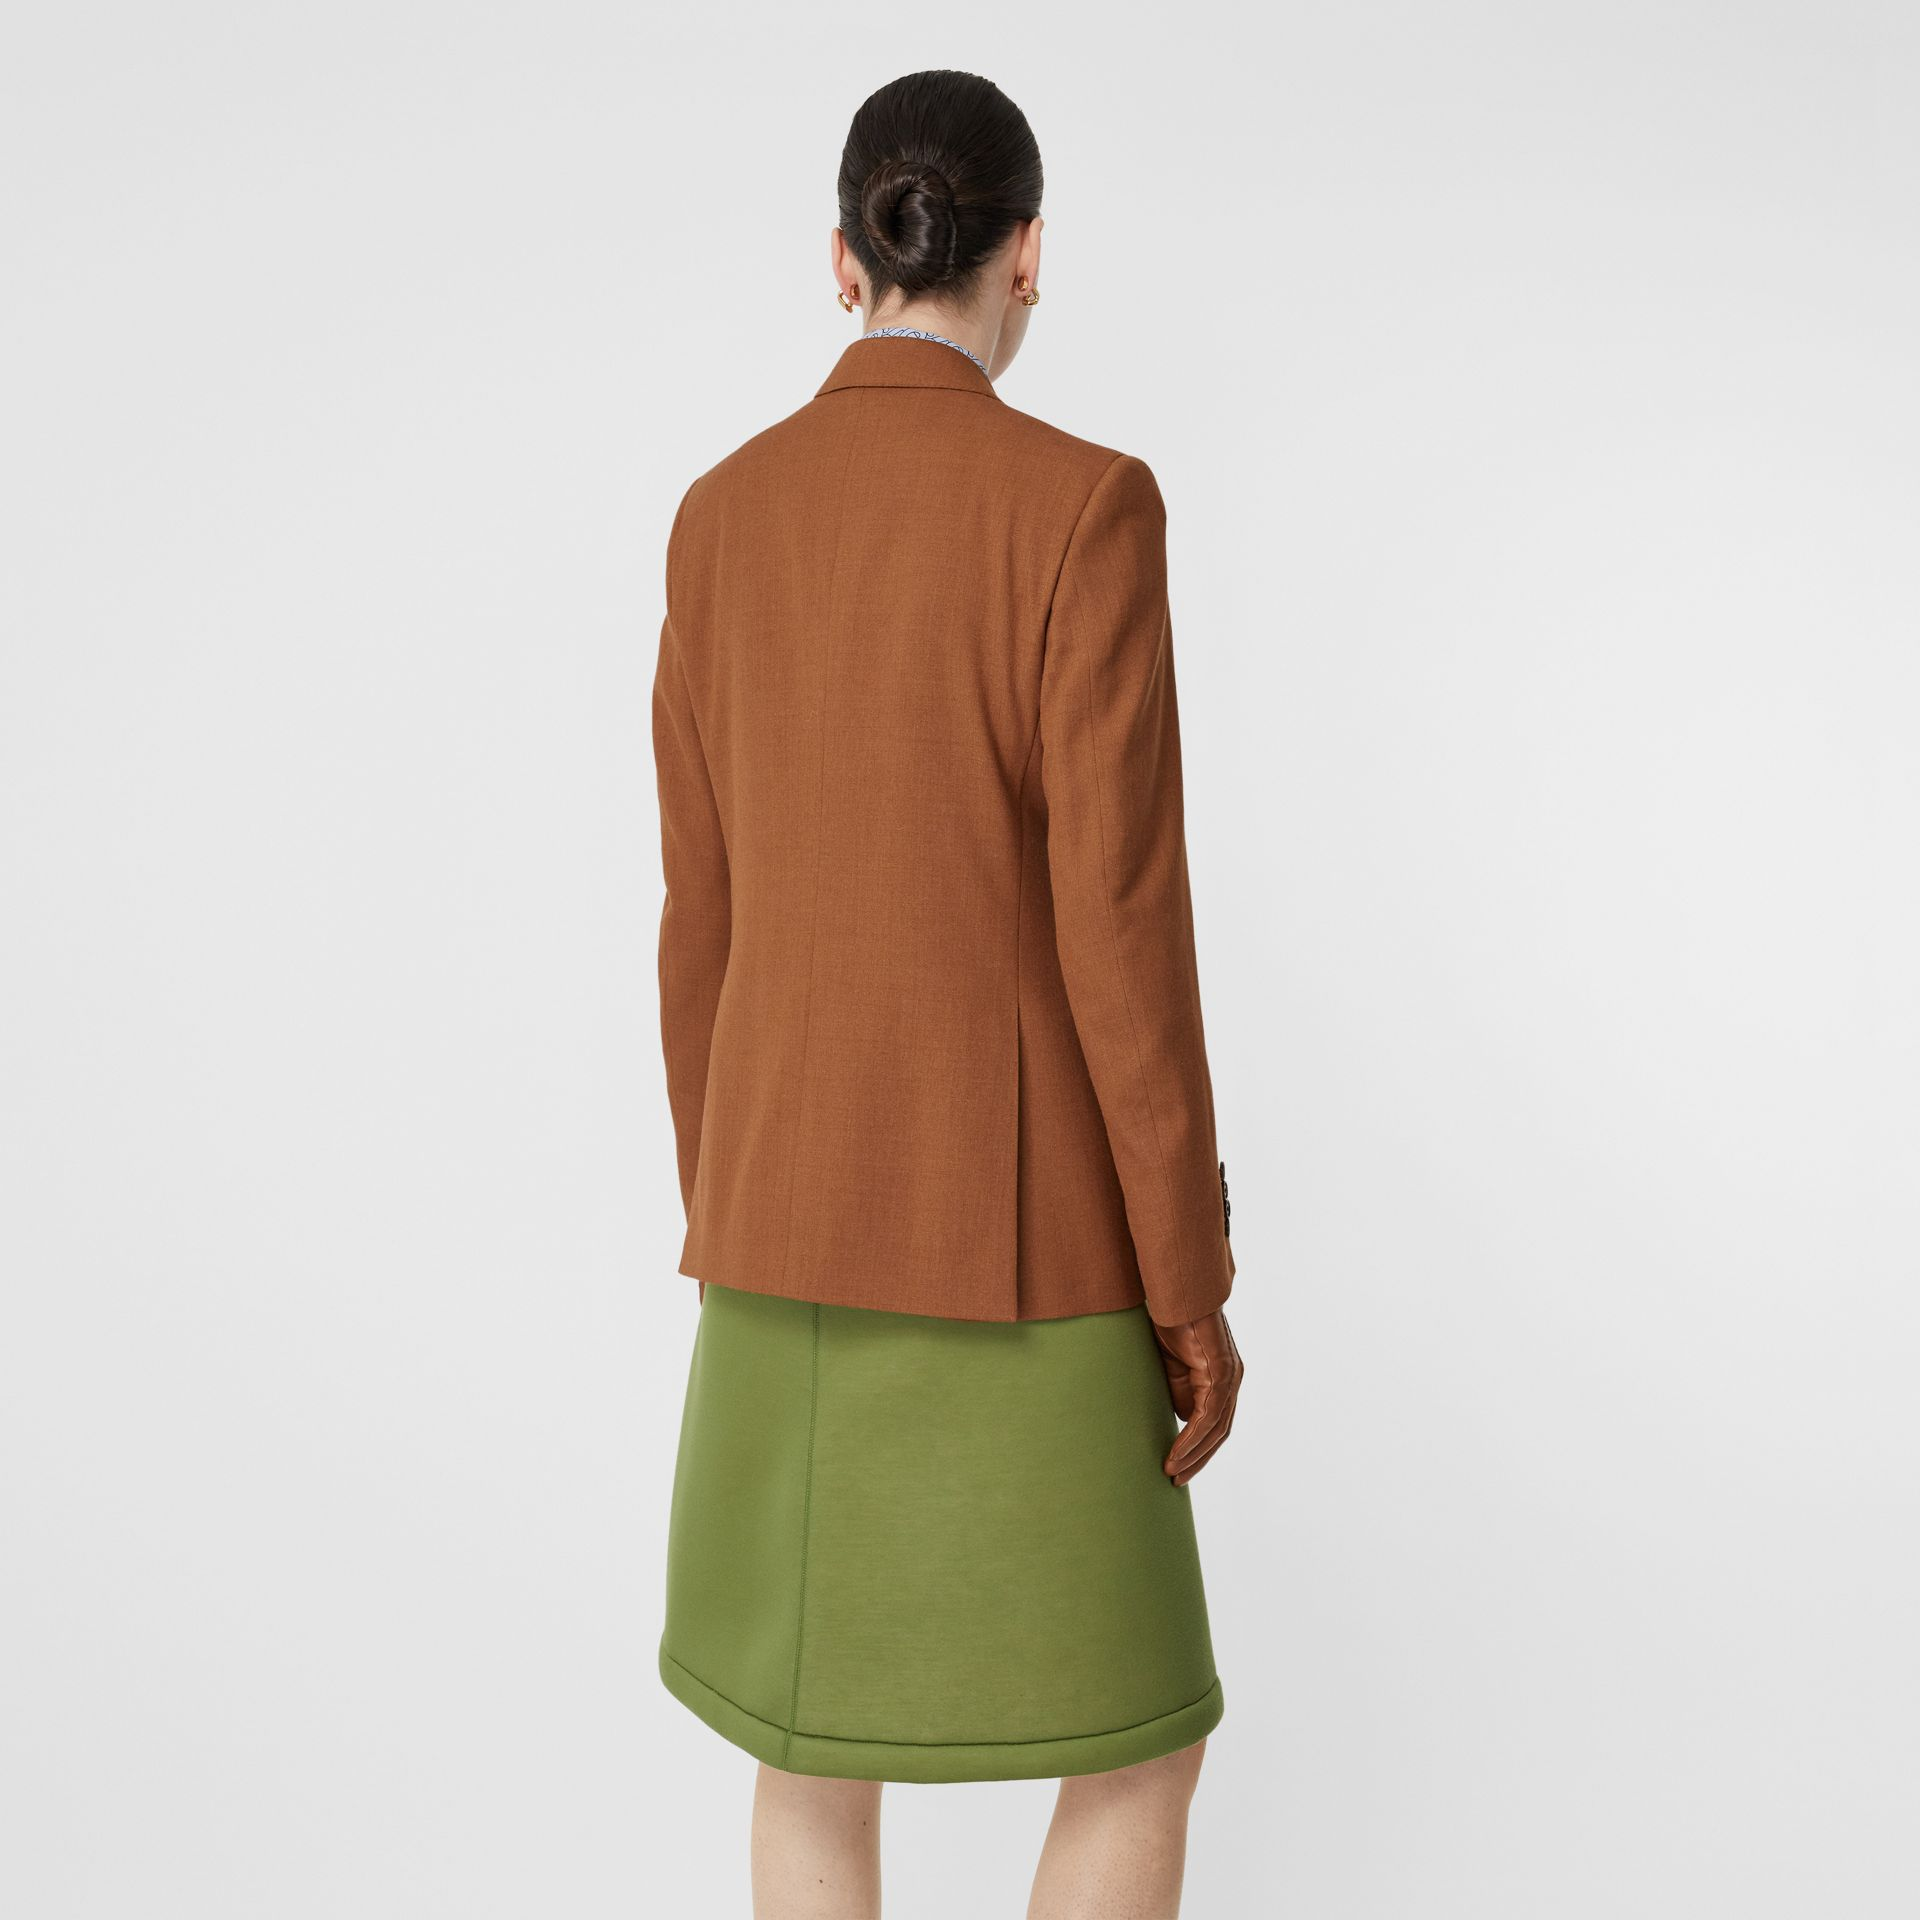 Wool, Silk and Cotton Blazer in Rust - Women | Burberry United States - gallery image 2